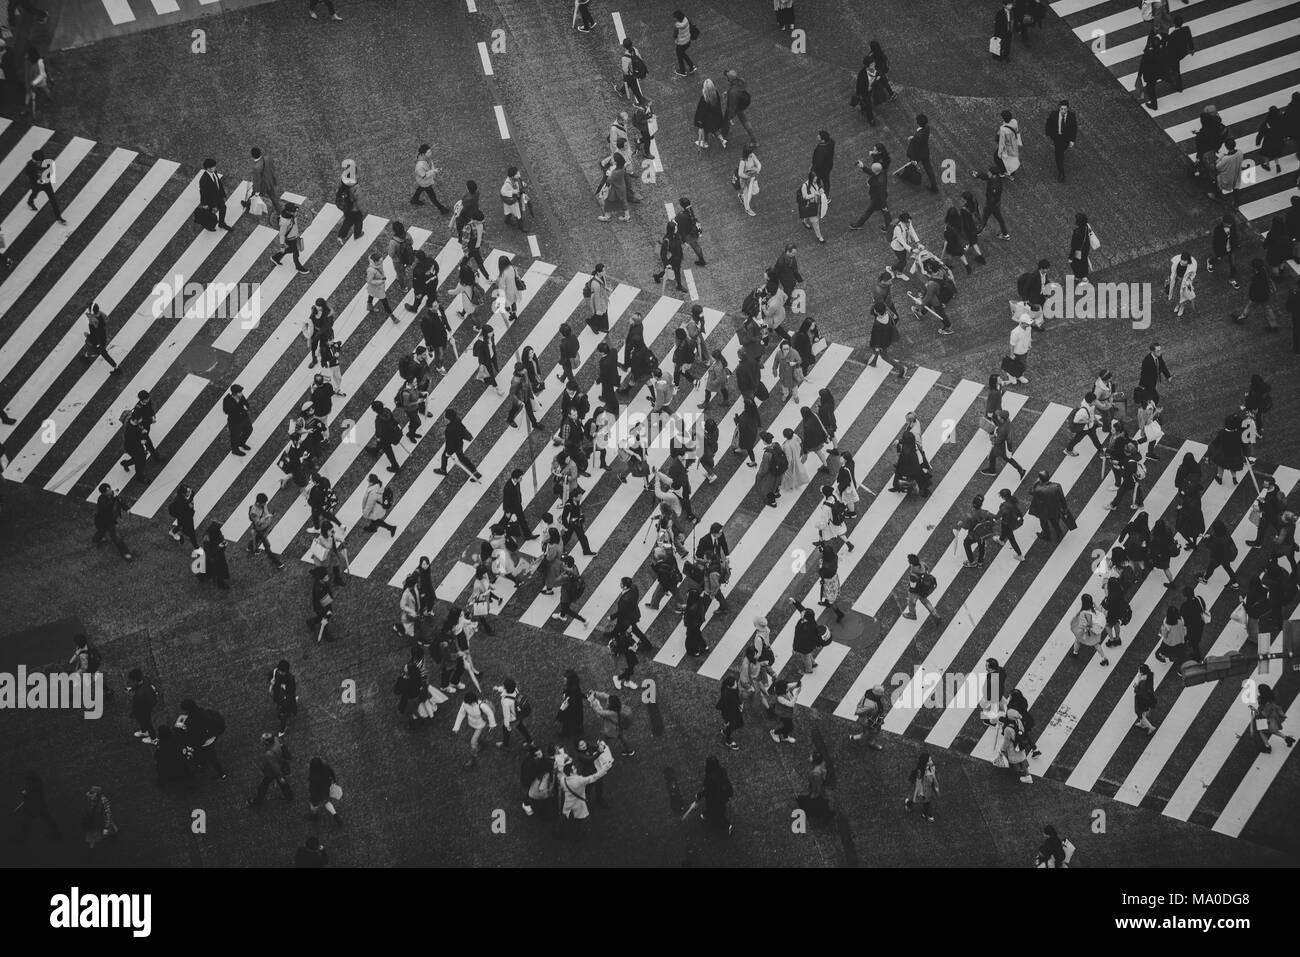 Mass of people crossing the street in Tokyo - Stock Image